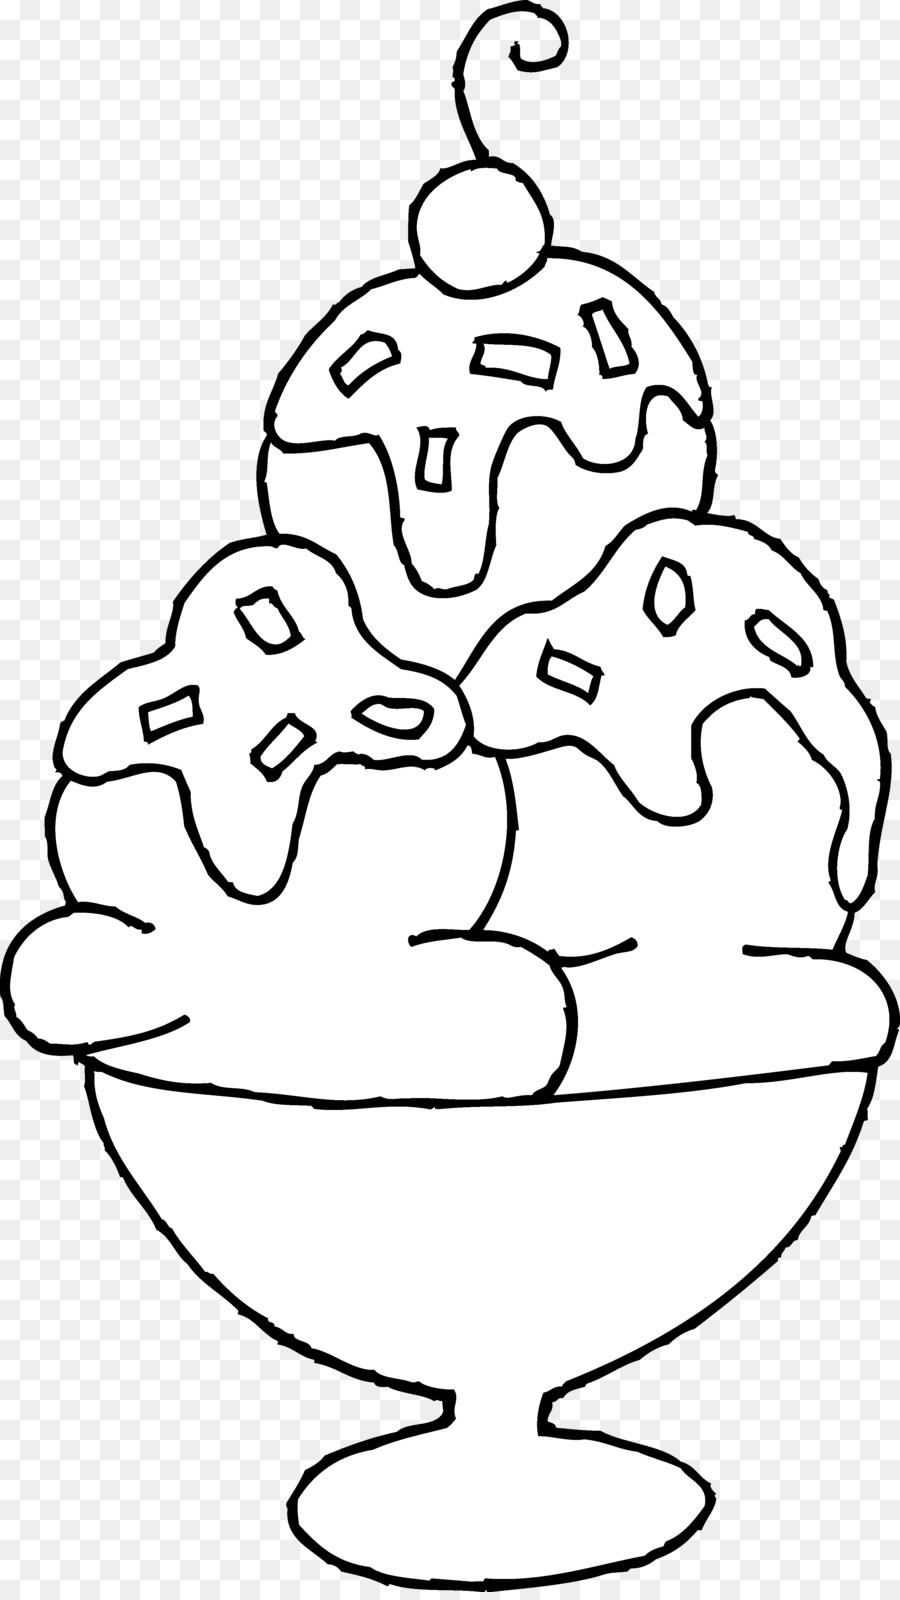 Free black and white ice cream sundae clipart. Book png download transparent